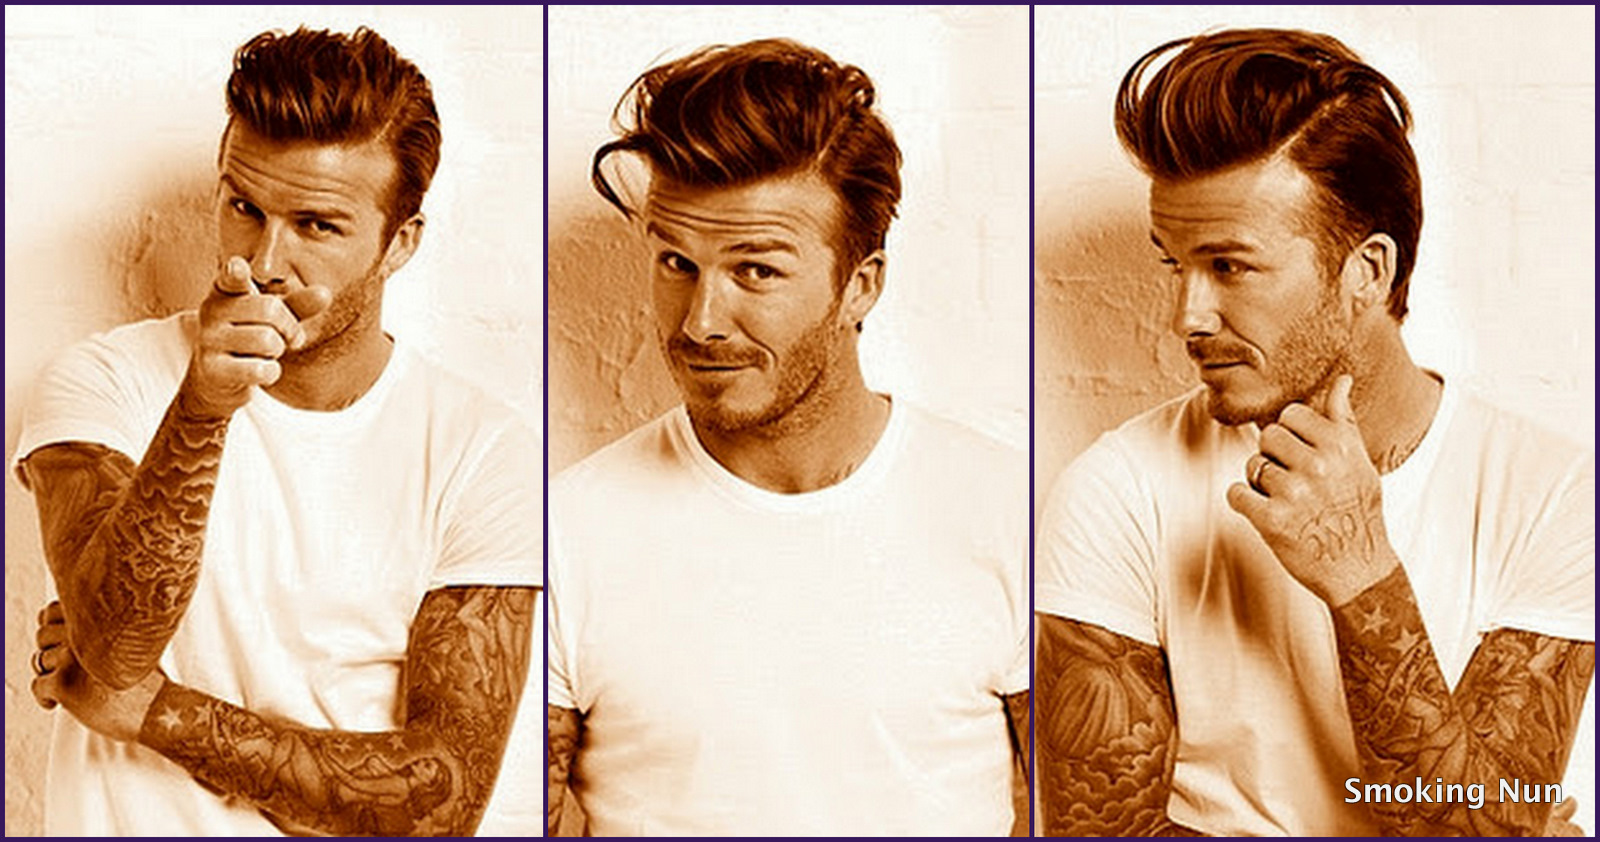 david beckham   david beckham photo 32607285   fanpop